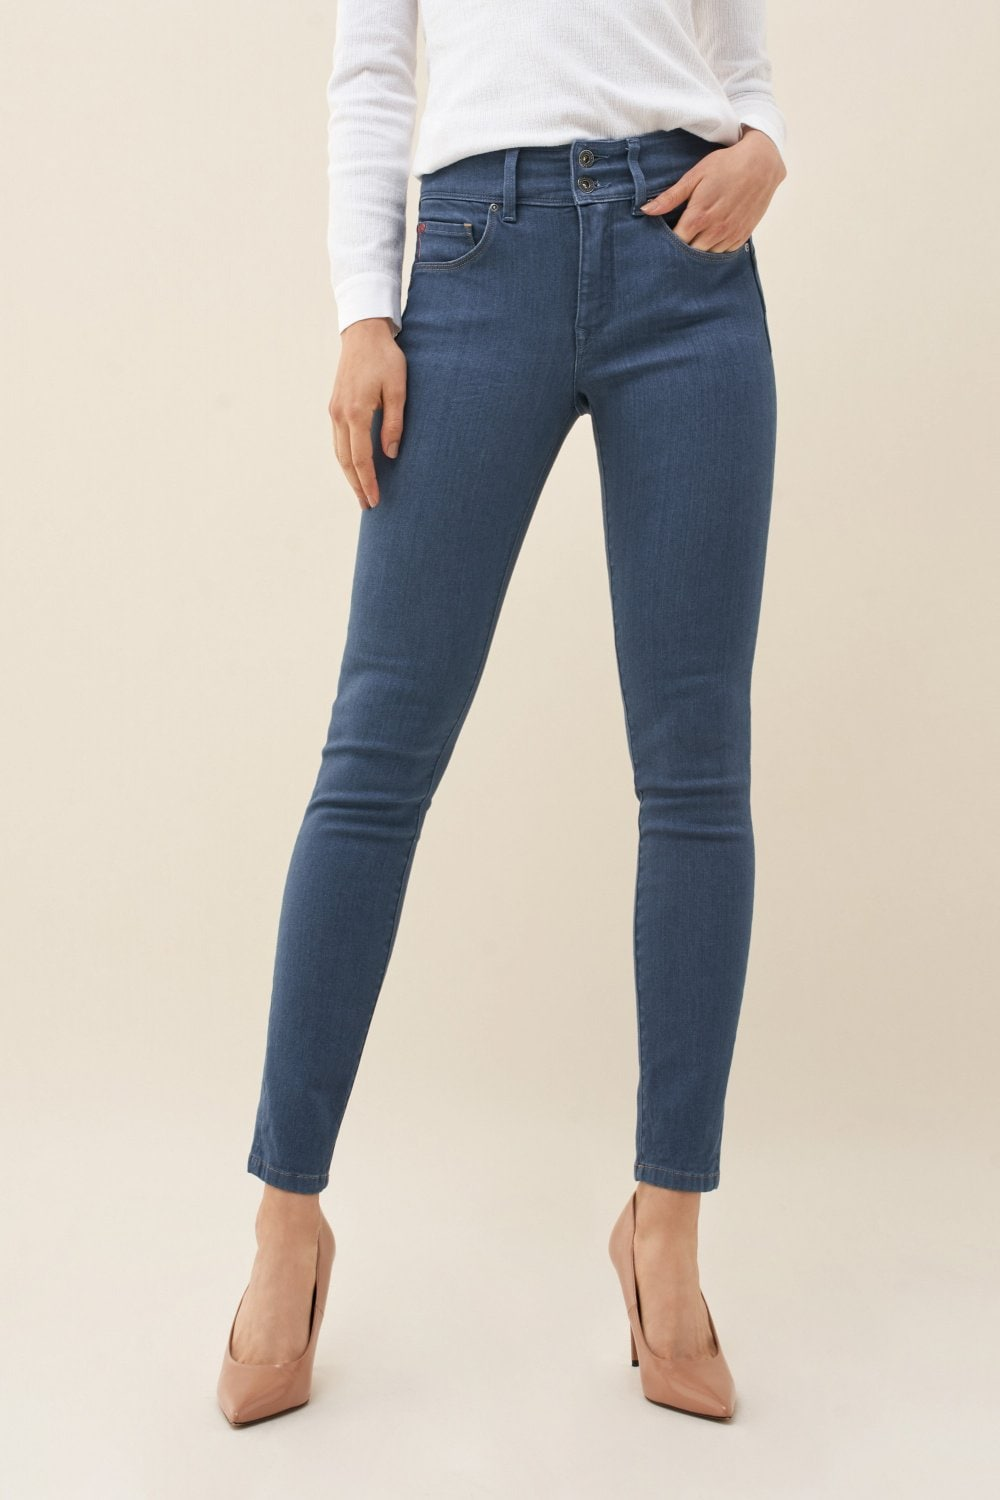 Push In Secret skinny jeans - Salsa